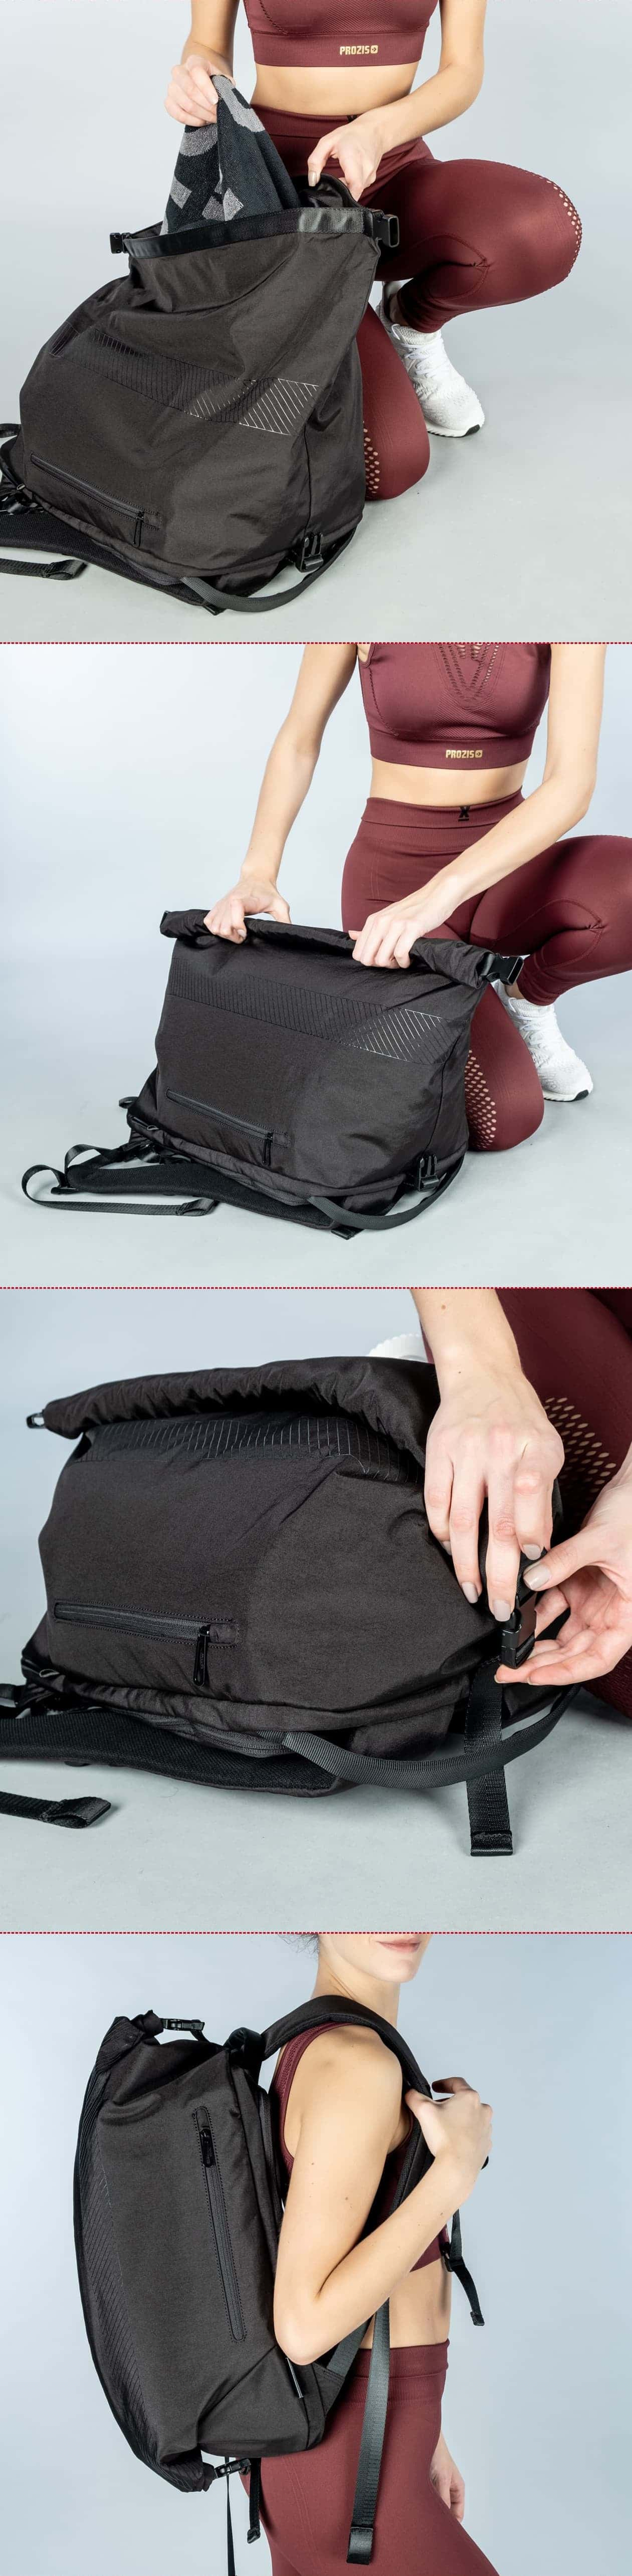 Prozis Hybrid Backpack